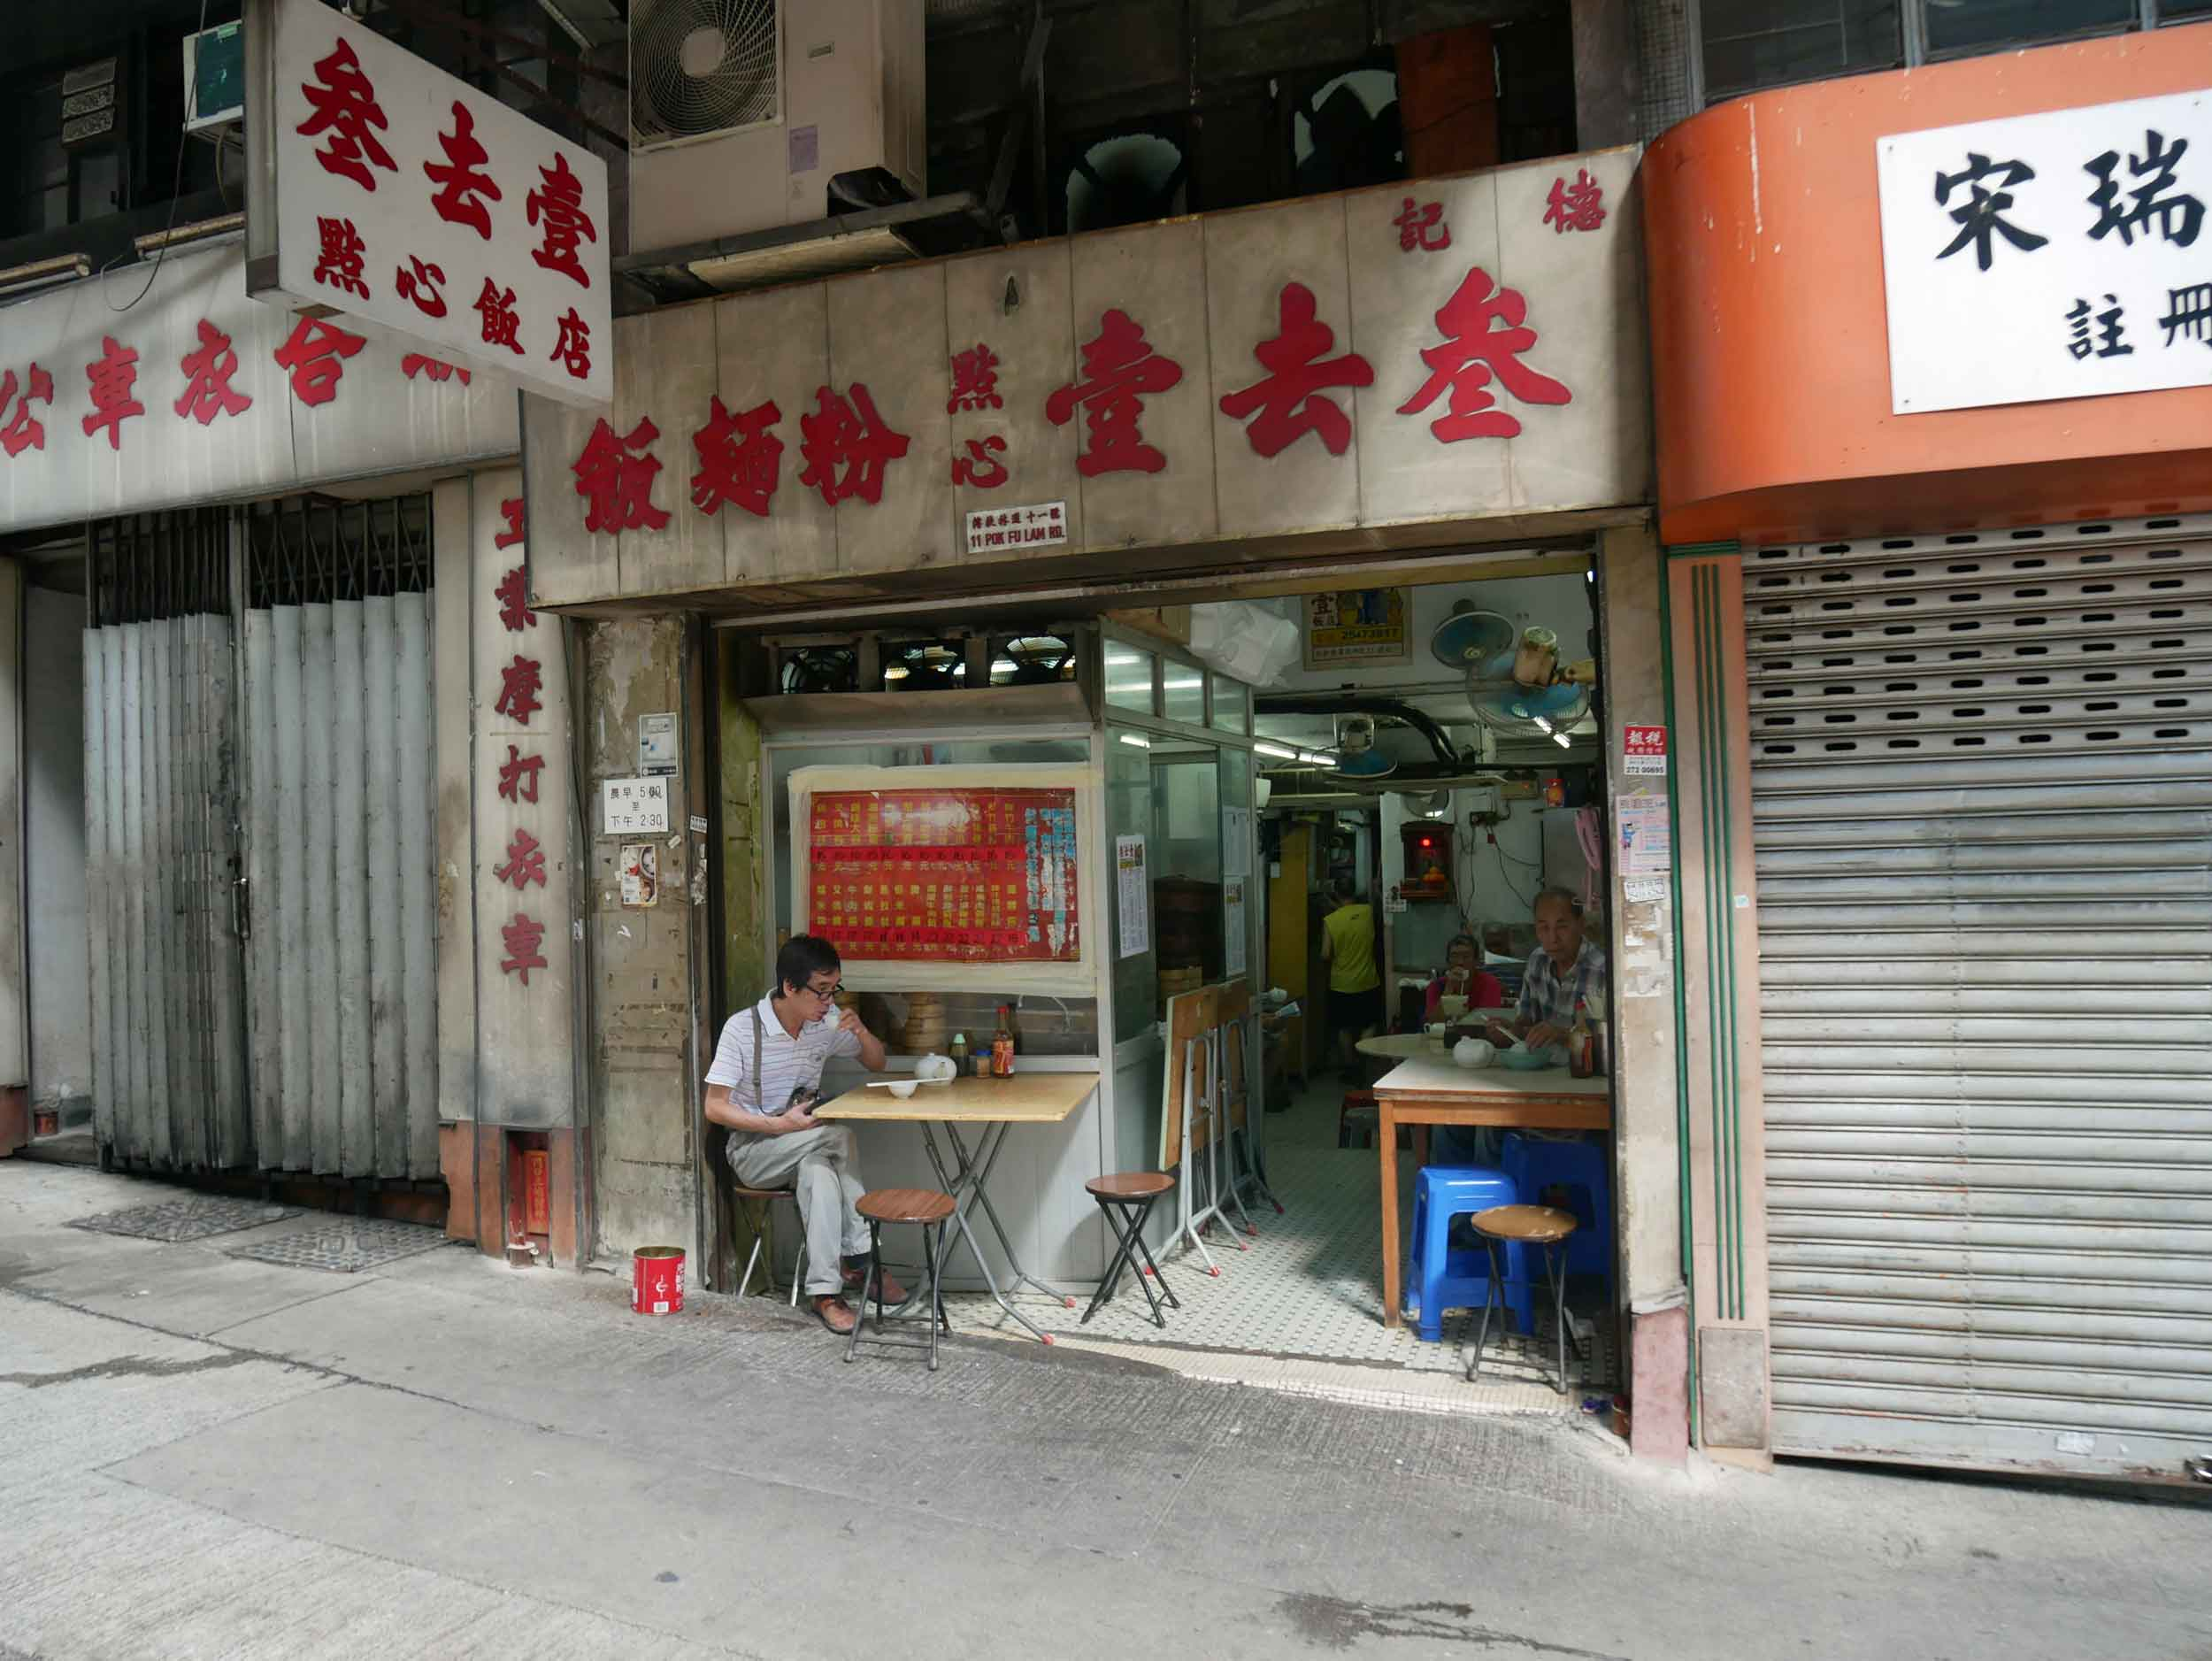 We started our Sunday at very local Sam Hui Yat for traditional morning dim sum (June 11).